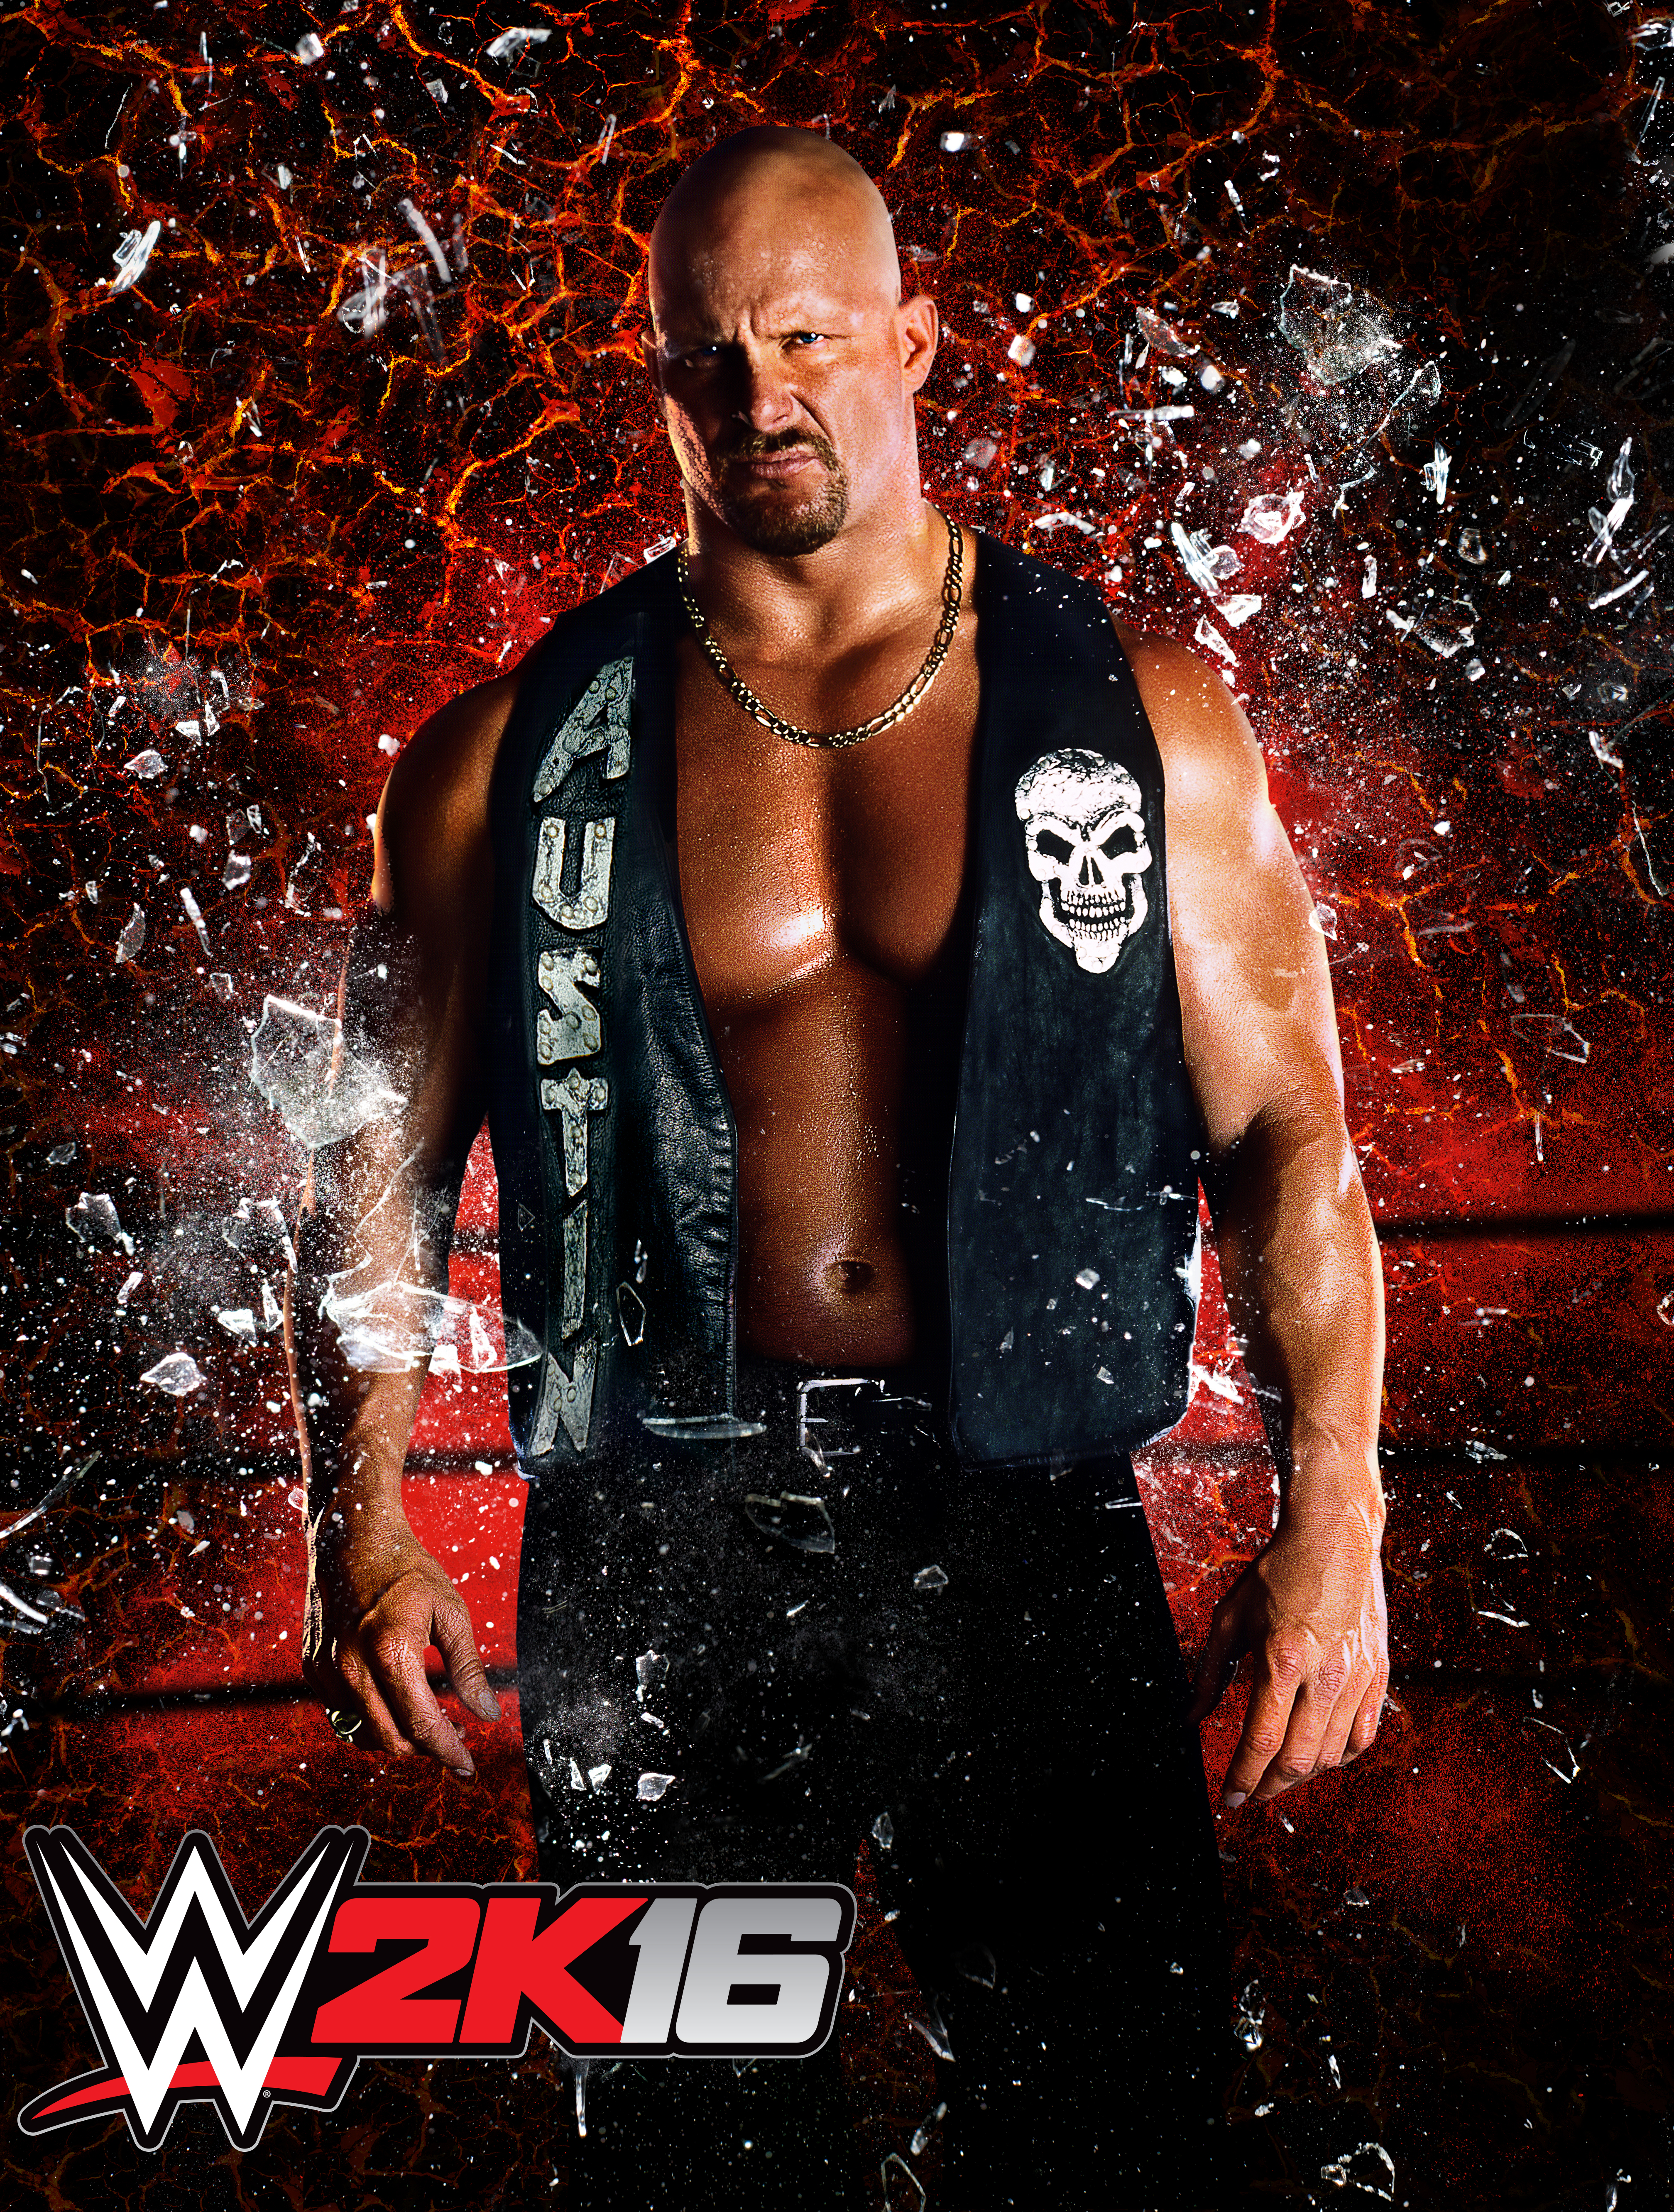 Stone Cold Steve Austin to grace the cover of WWE 2K16, maybe WrestleMania afterward